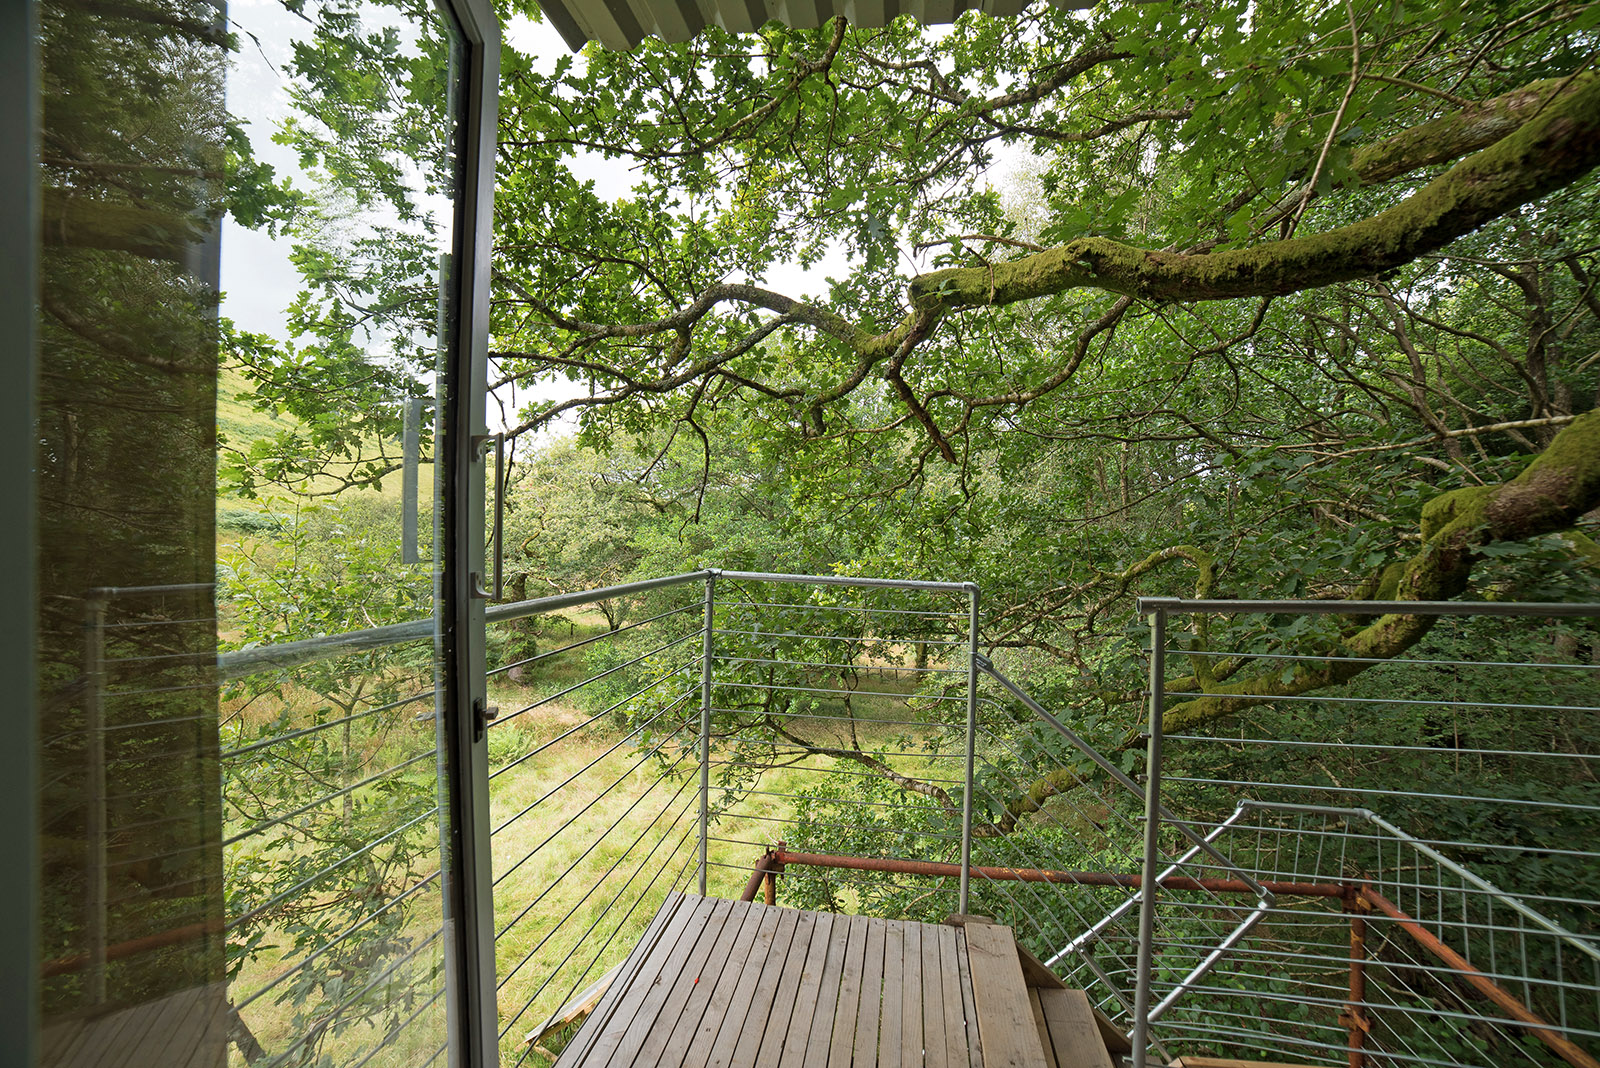 Treehouse views through the branches